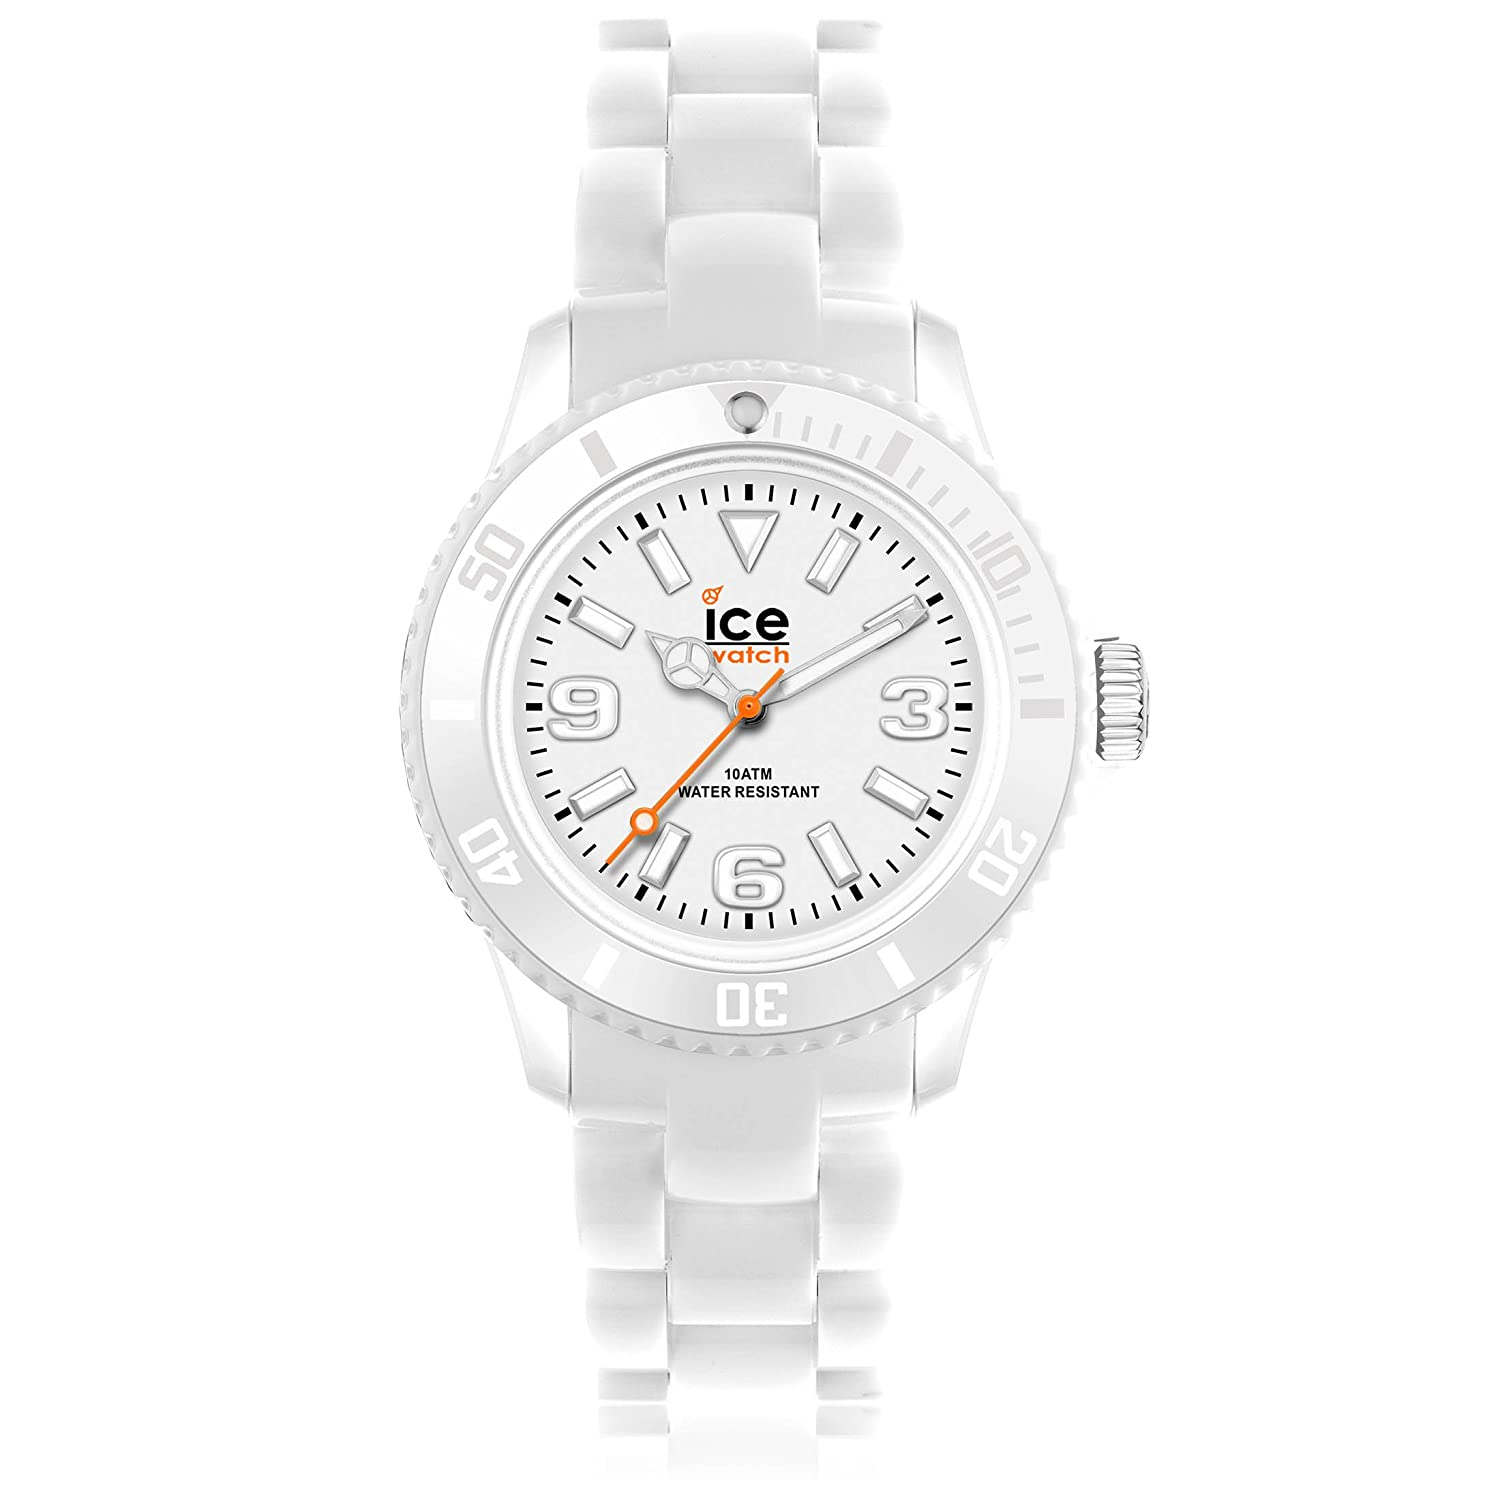 TALLA Medium. Ice-Watch - Ice Solid White - Reloj Blanco para Hombre (Unisex) con Correa de Polyamide